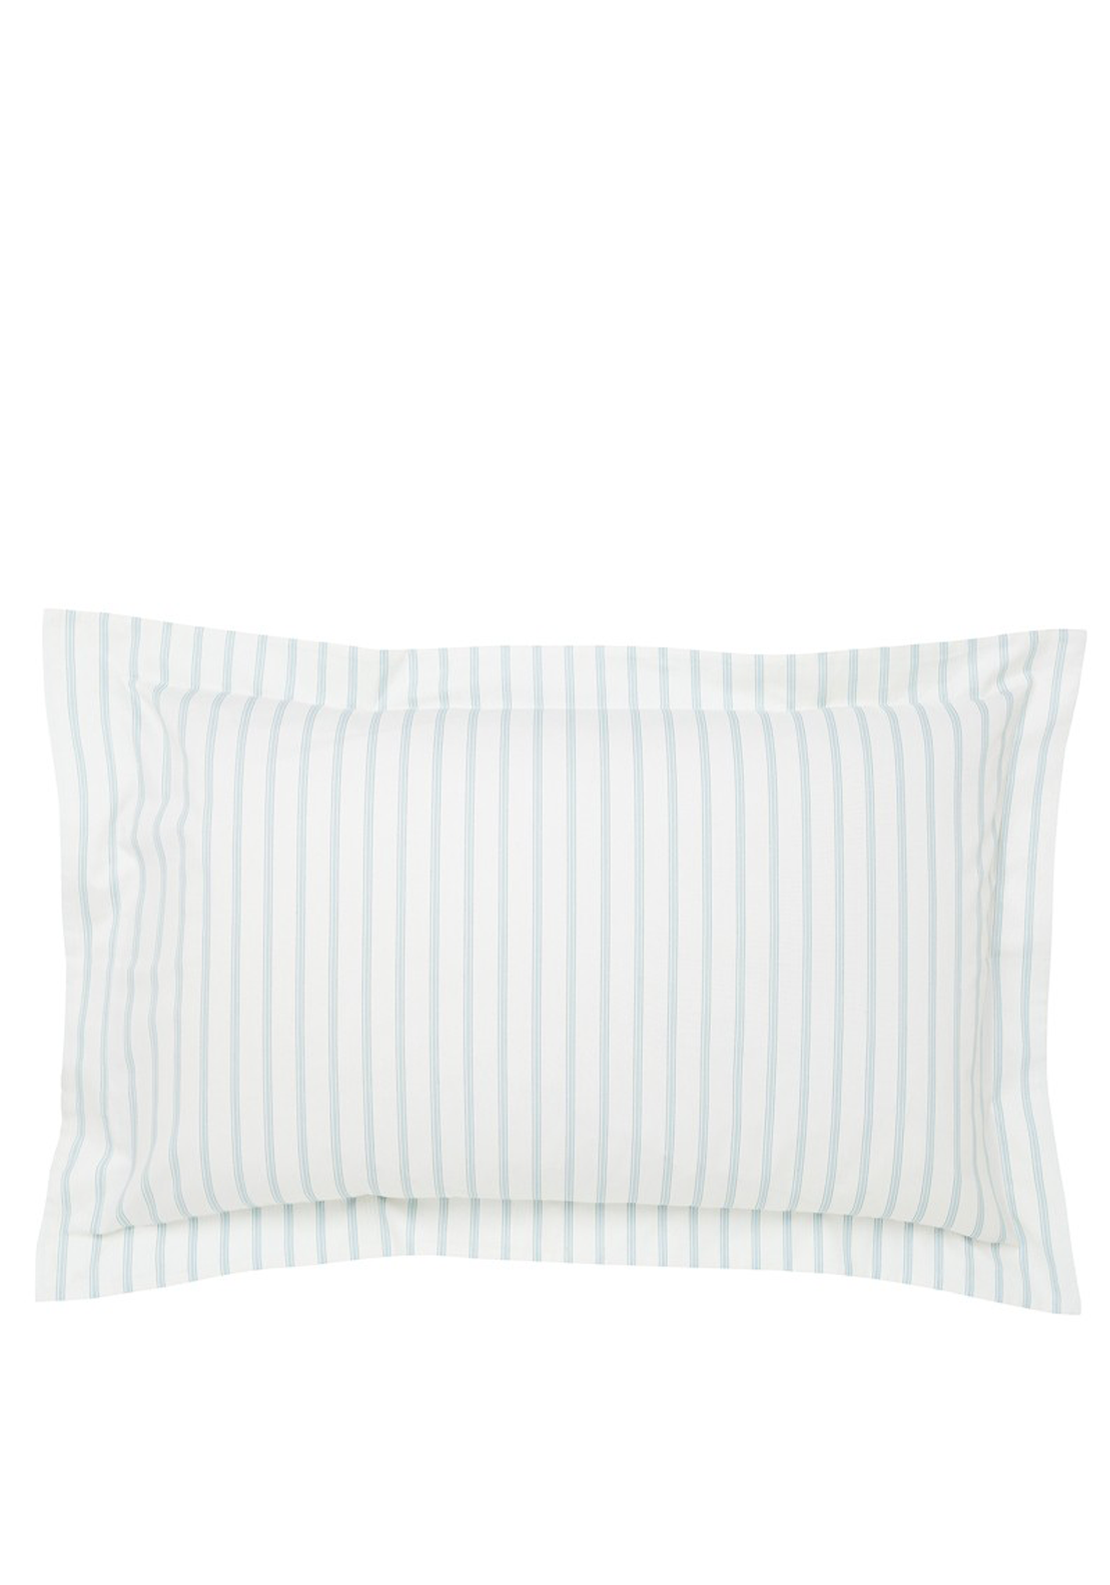 Fable Ellis Stripe Oxford Pillowcase, Linen